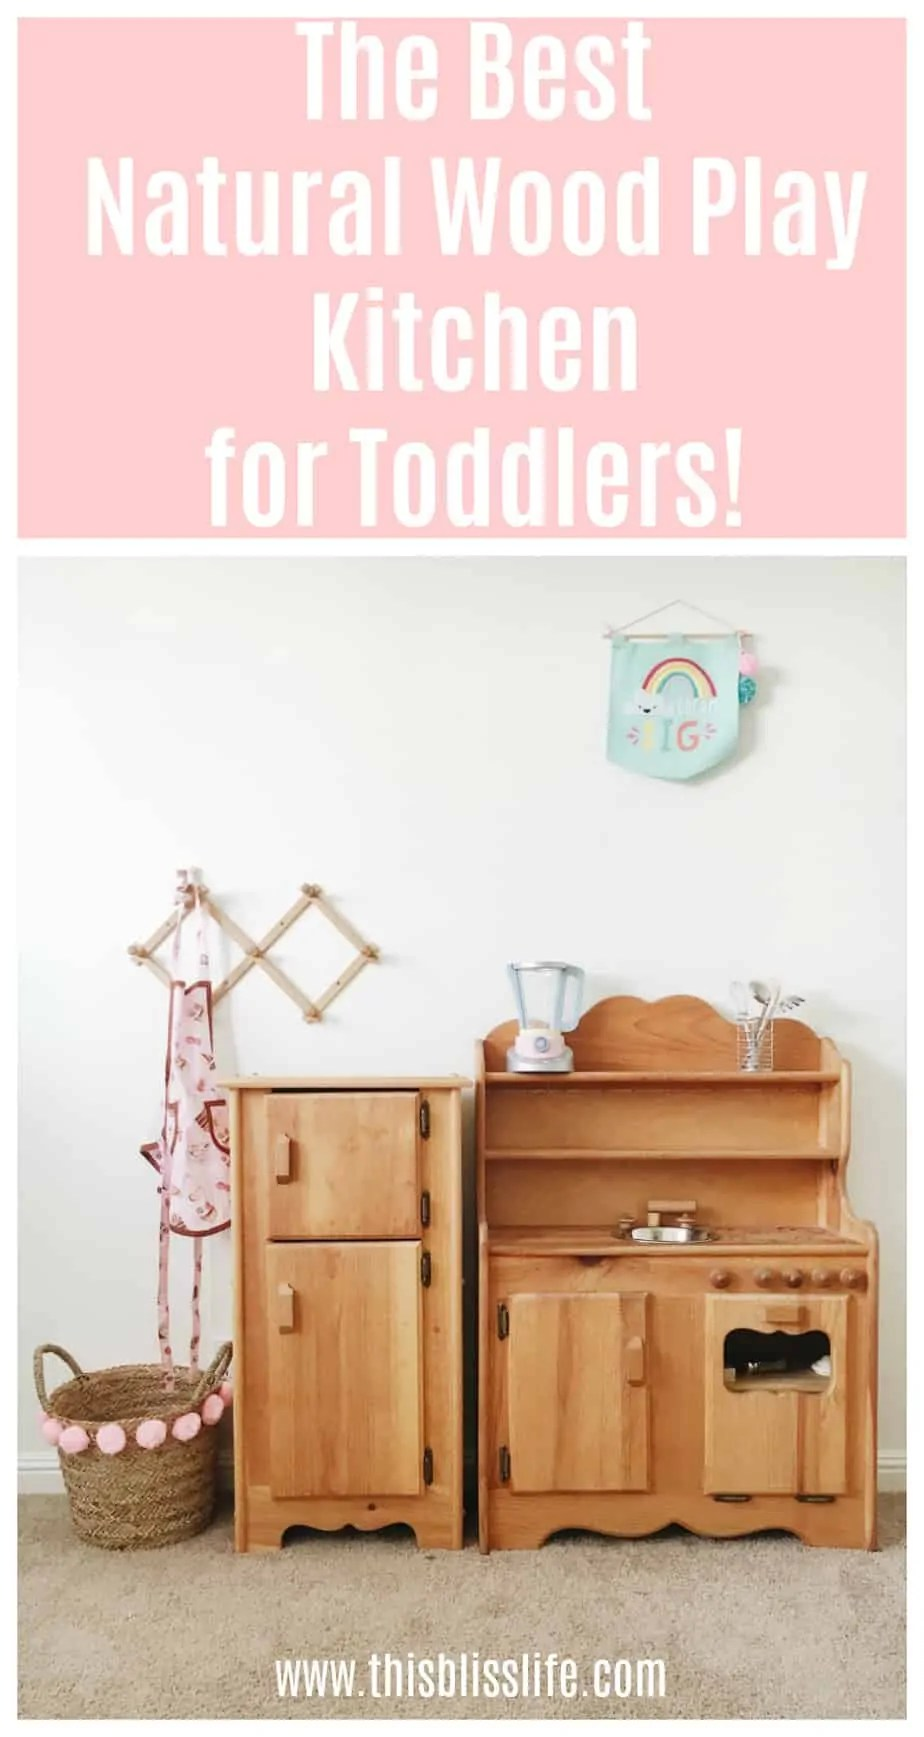 The Best Natural Wood Play Kitchen - This Bliss Life